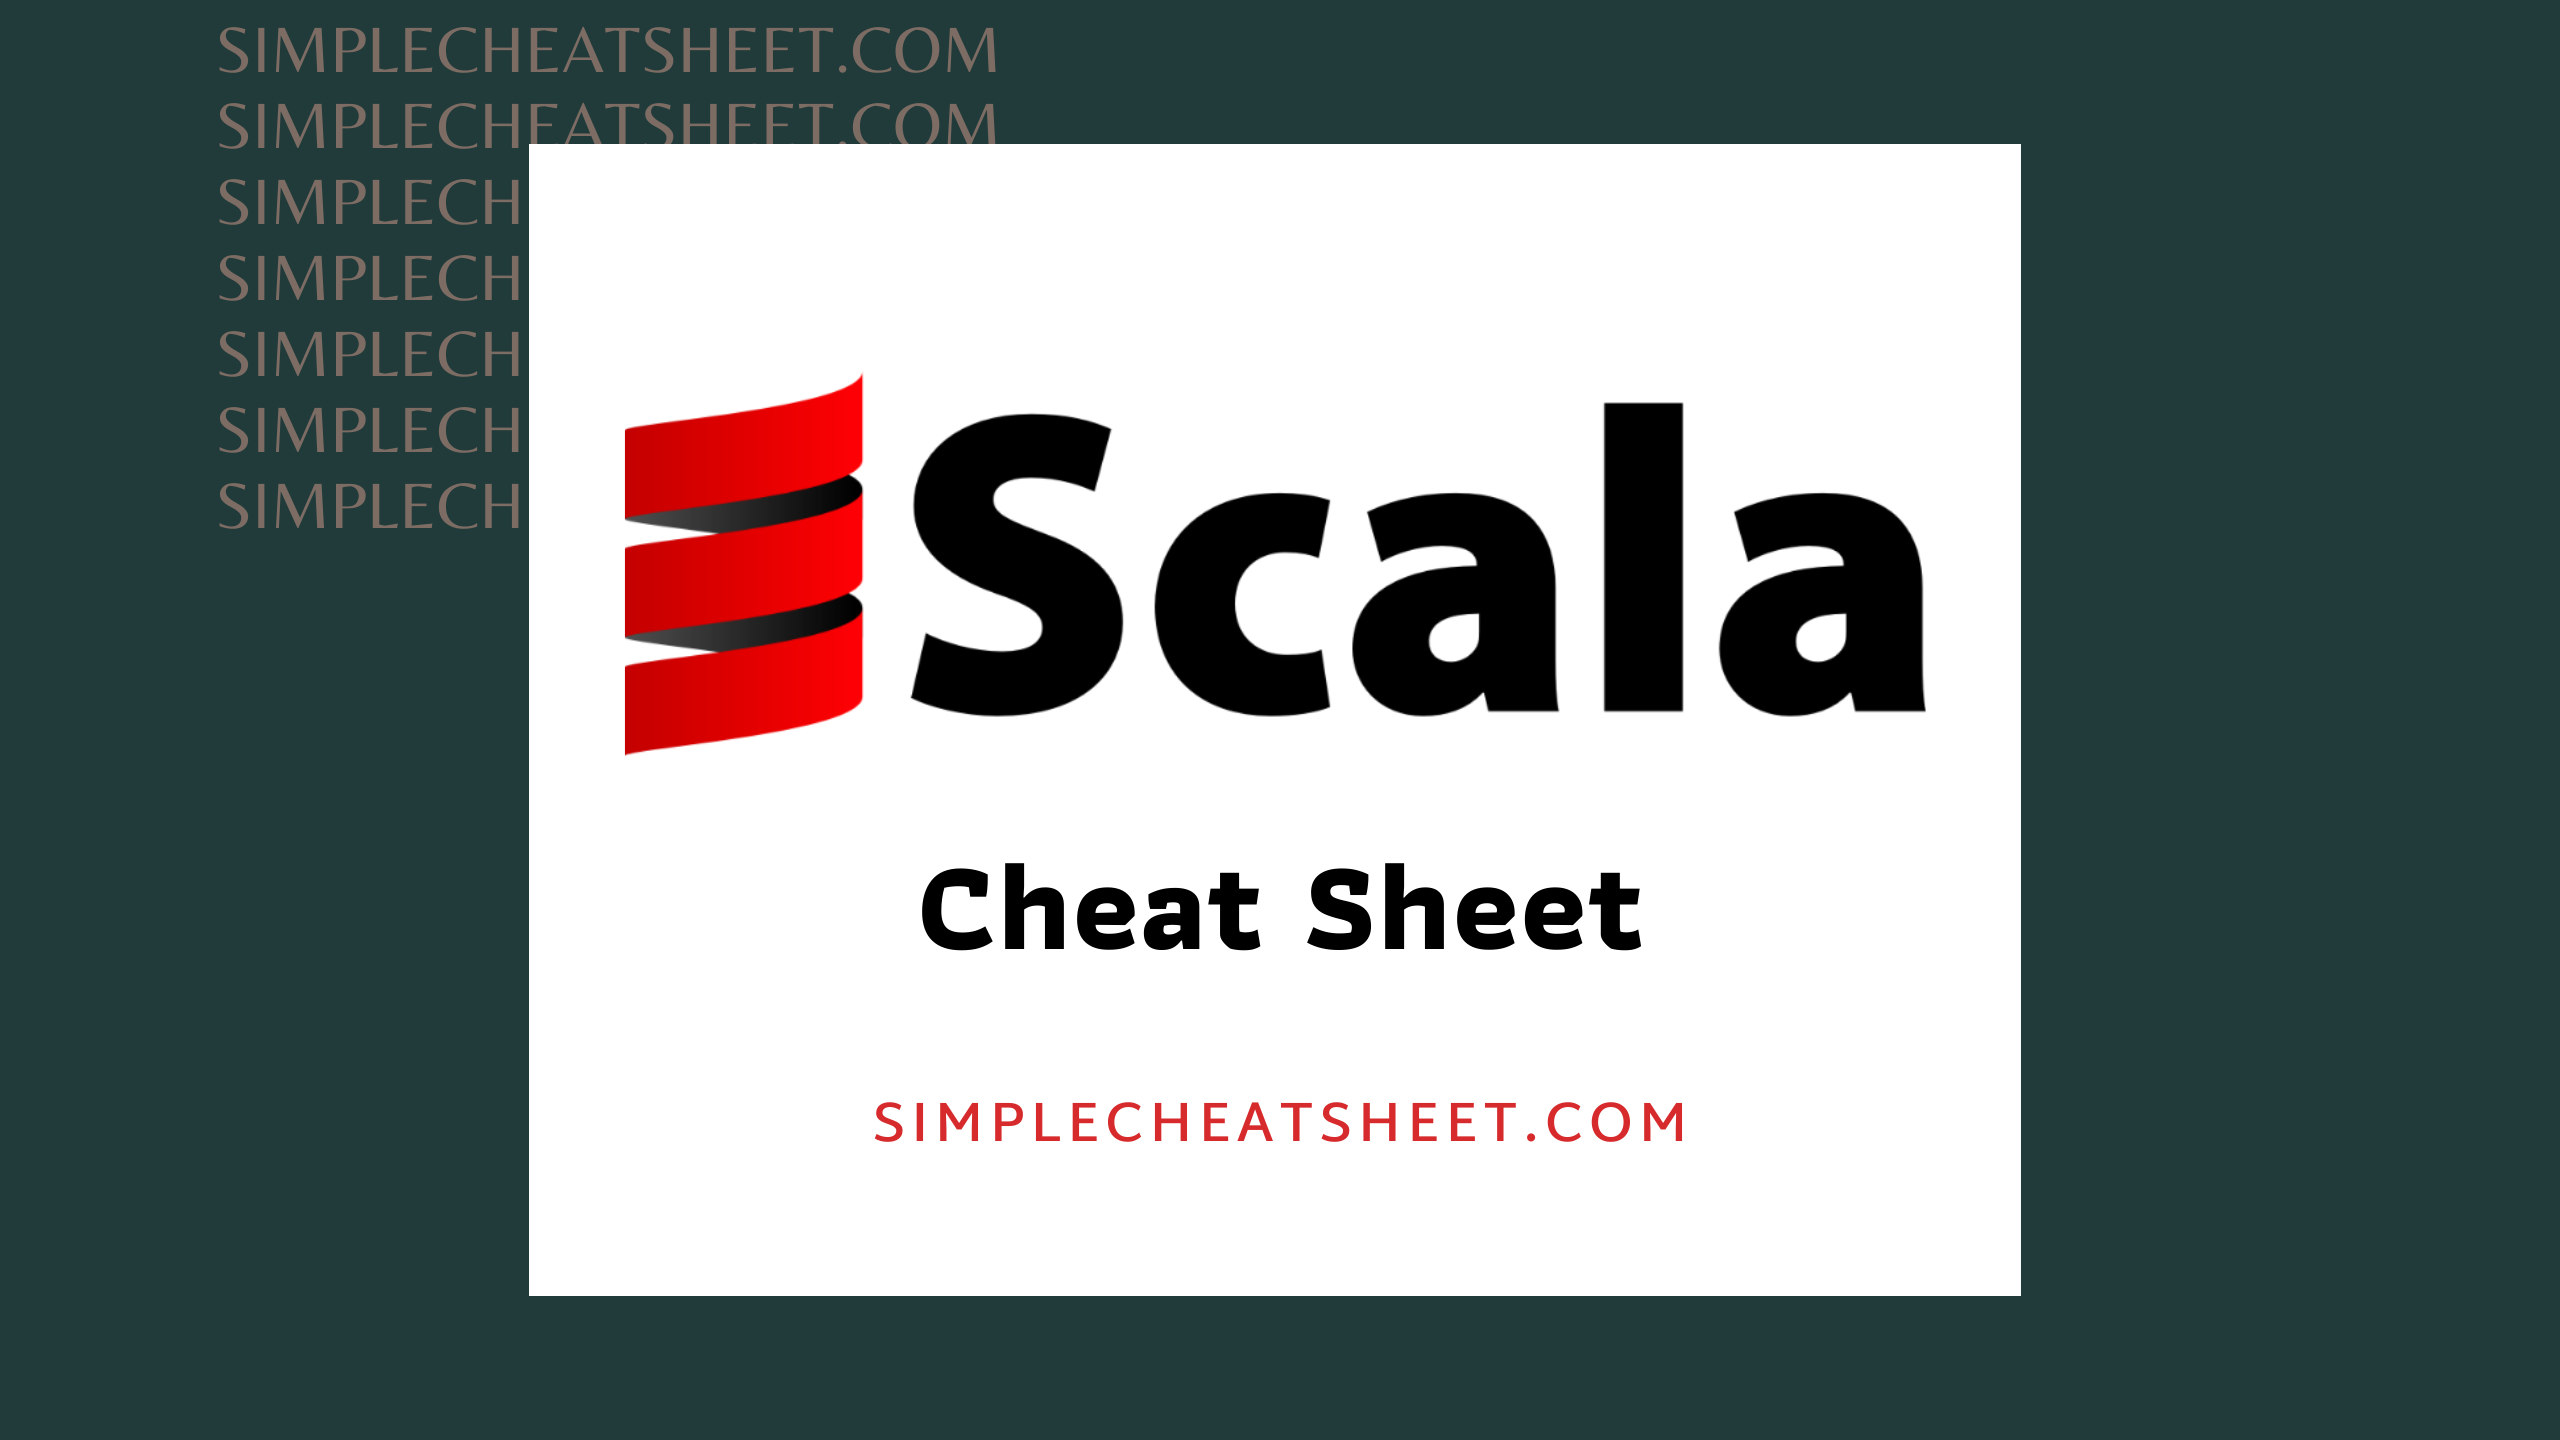 Scala Cheat Sheet